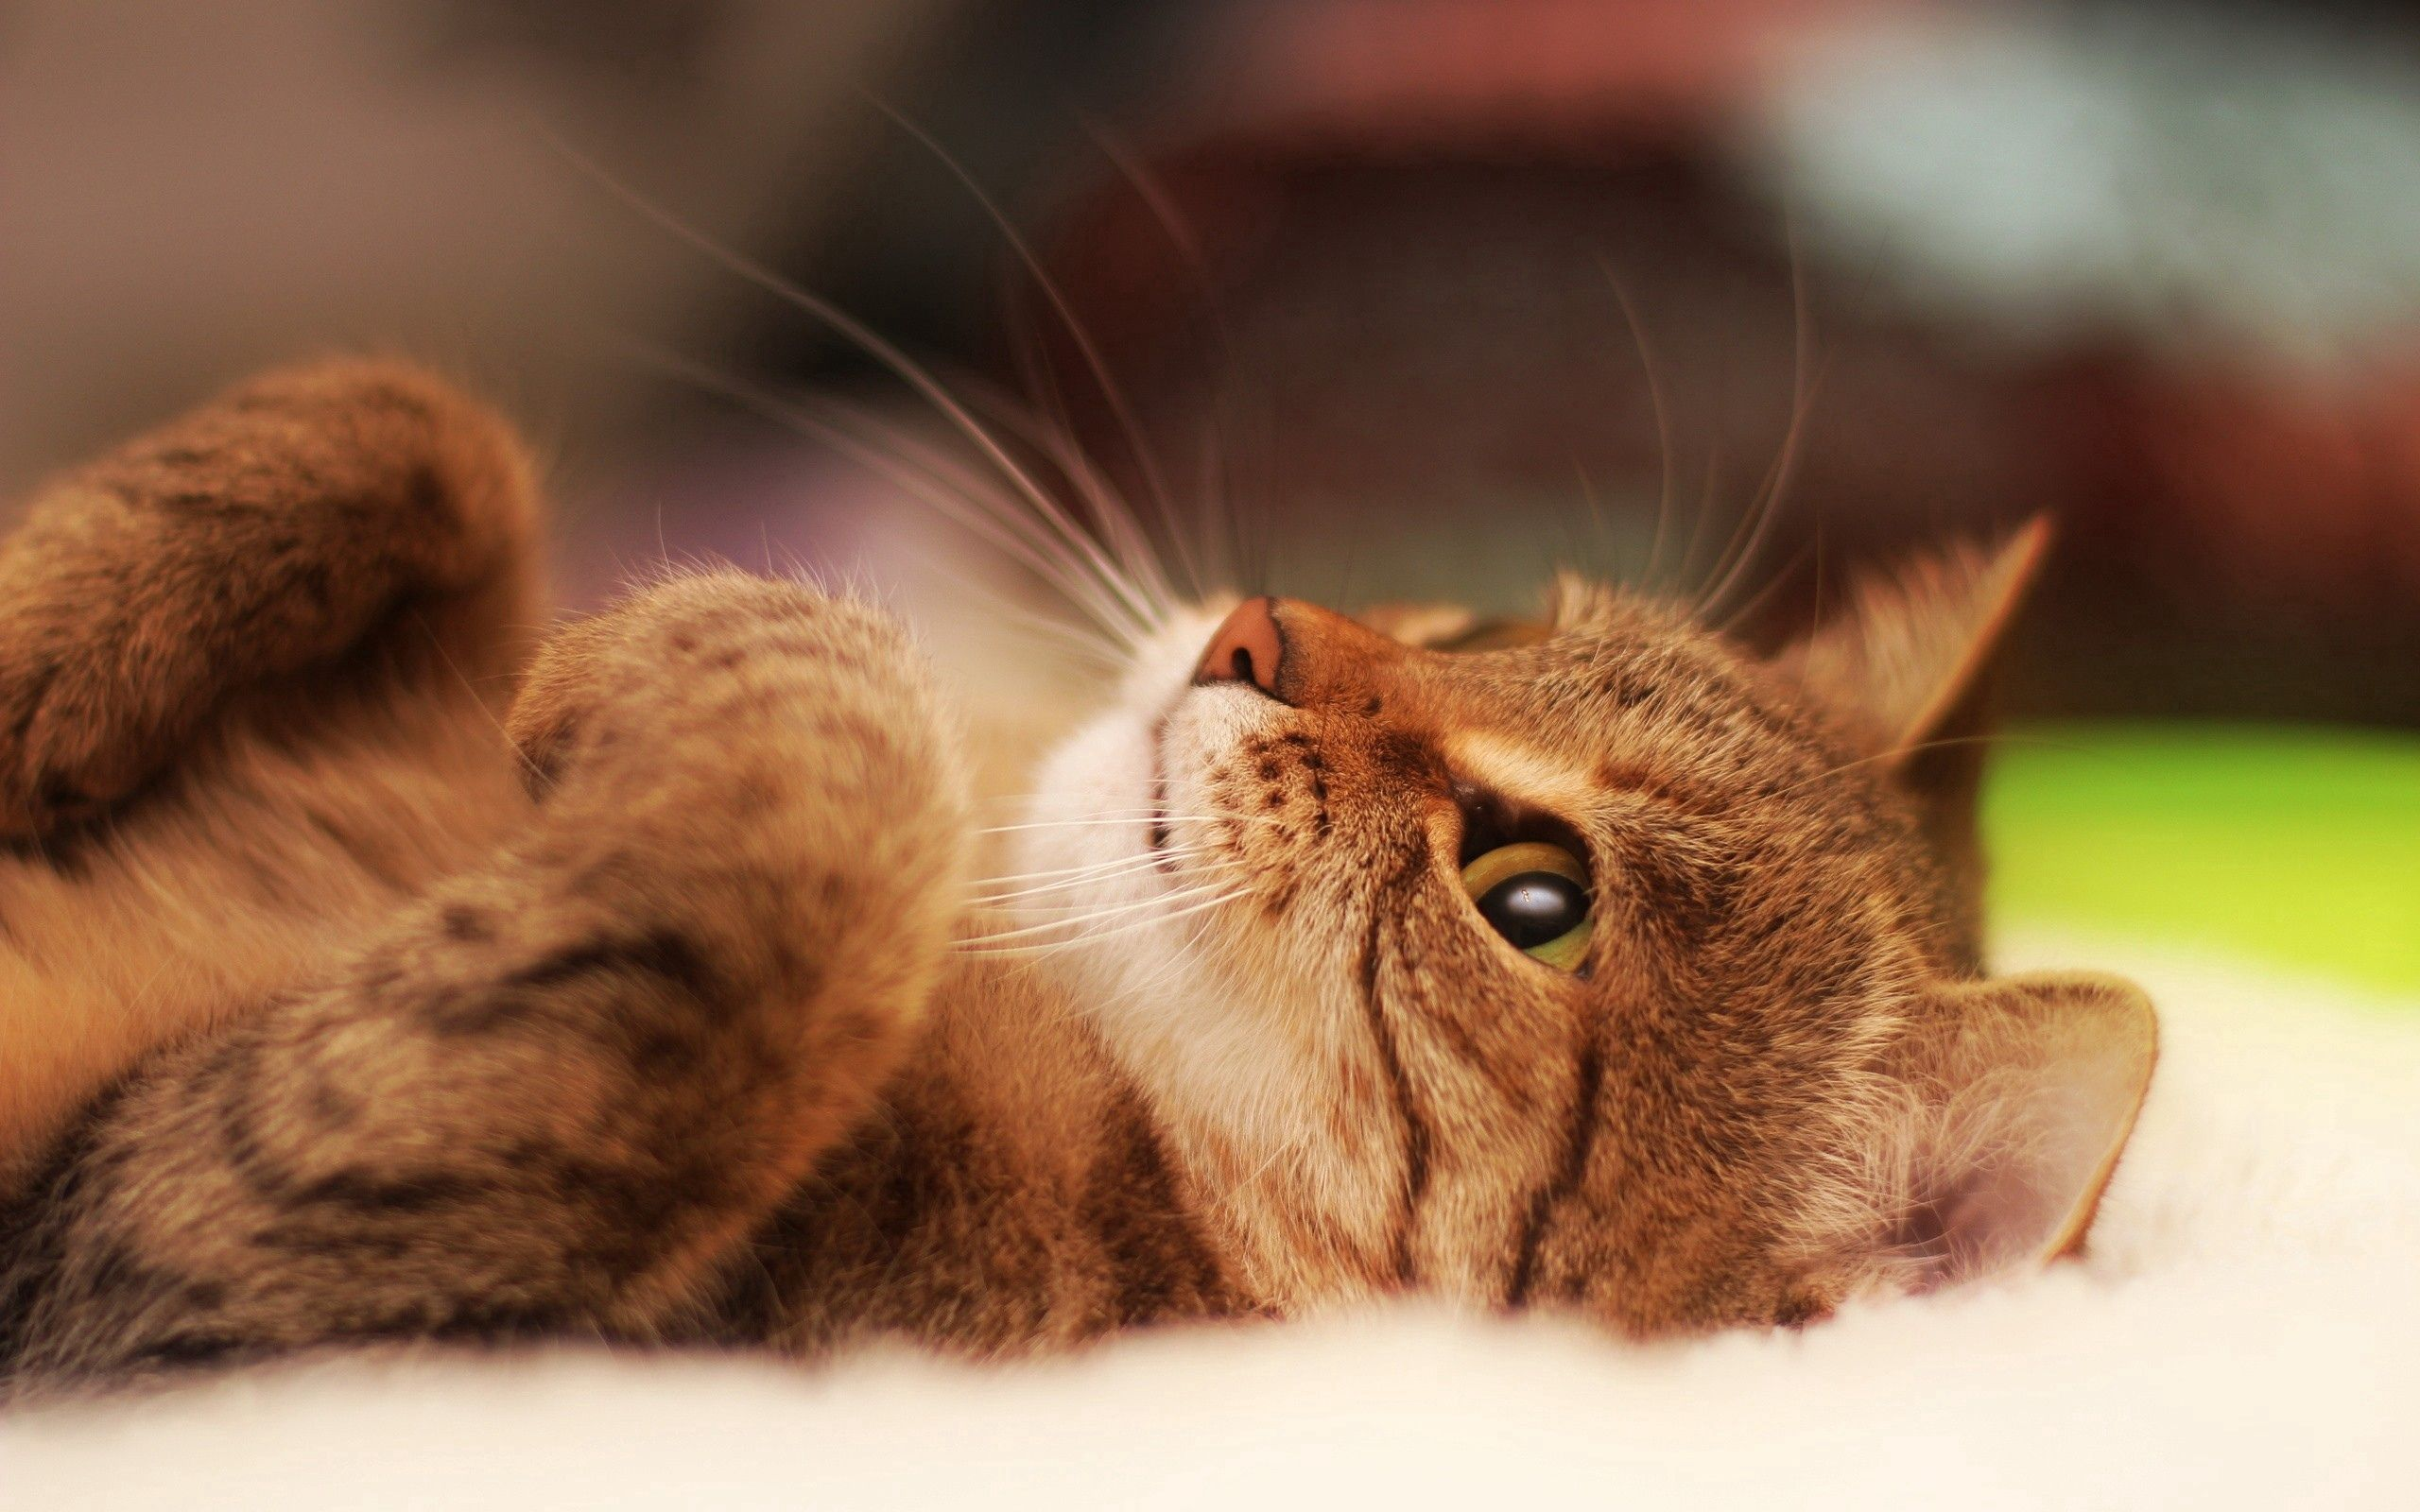 132812 download wallpaper Animals, Cat, Nice, Sweetheart, Striped, To Lie Down, Lie, Paws screensavers and pictures for free